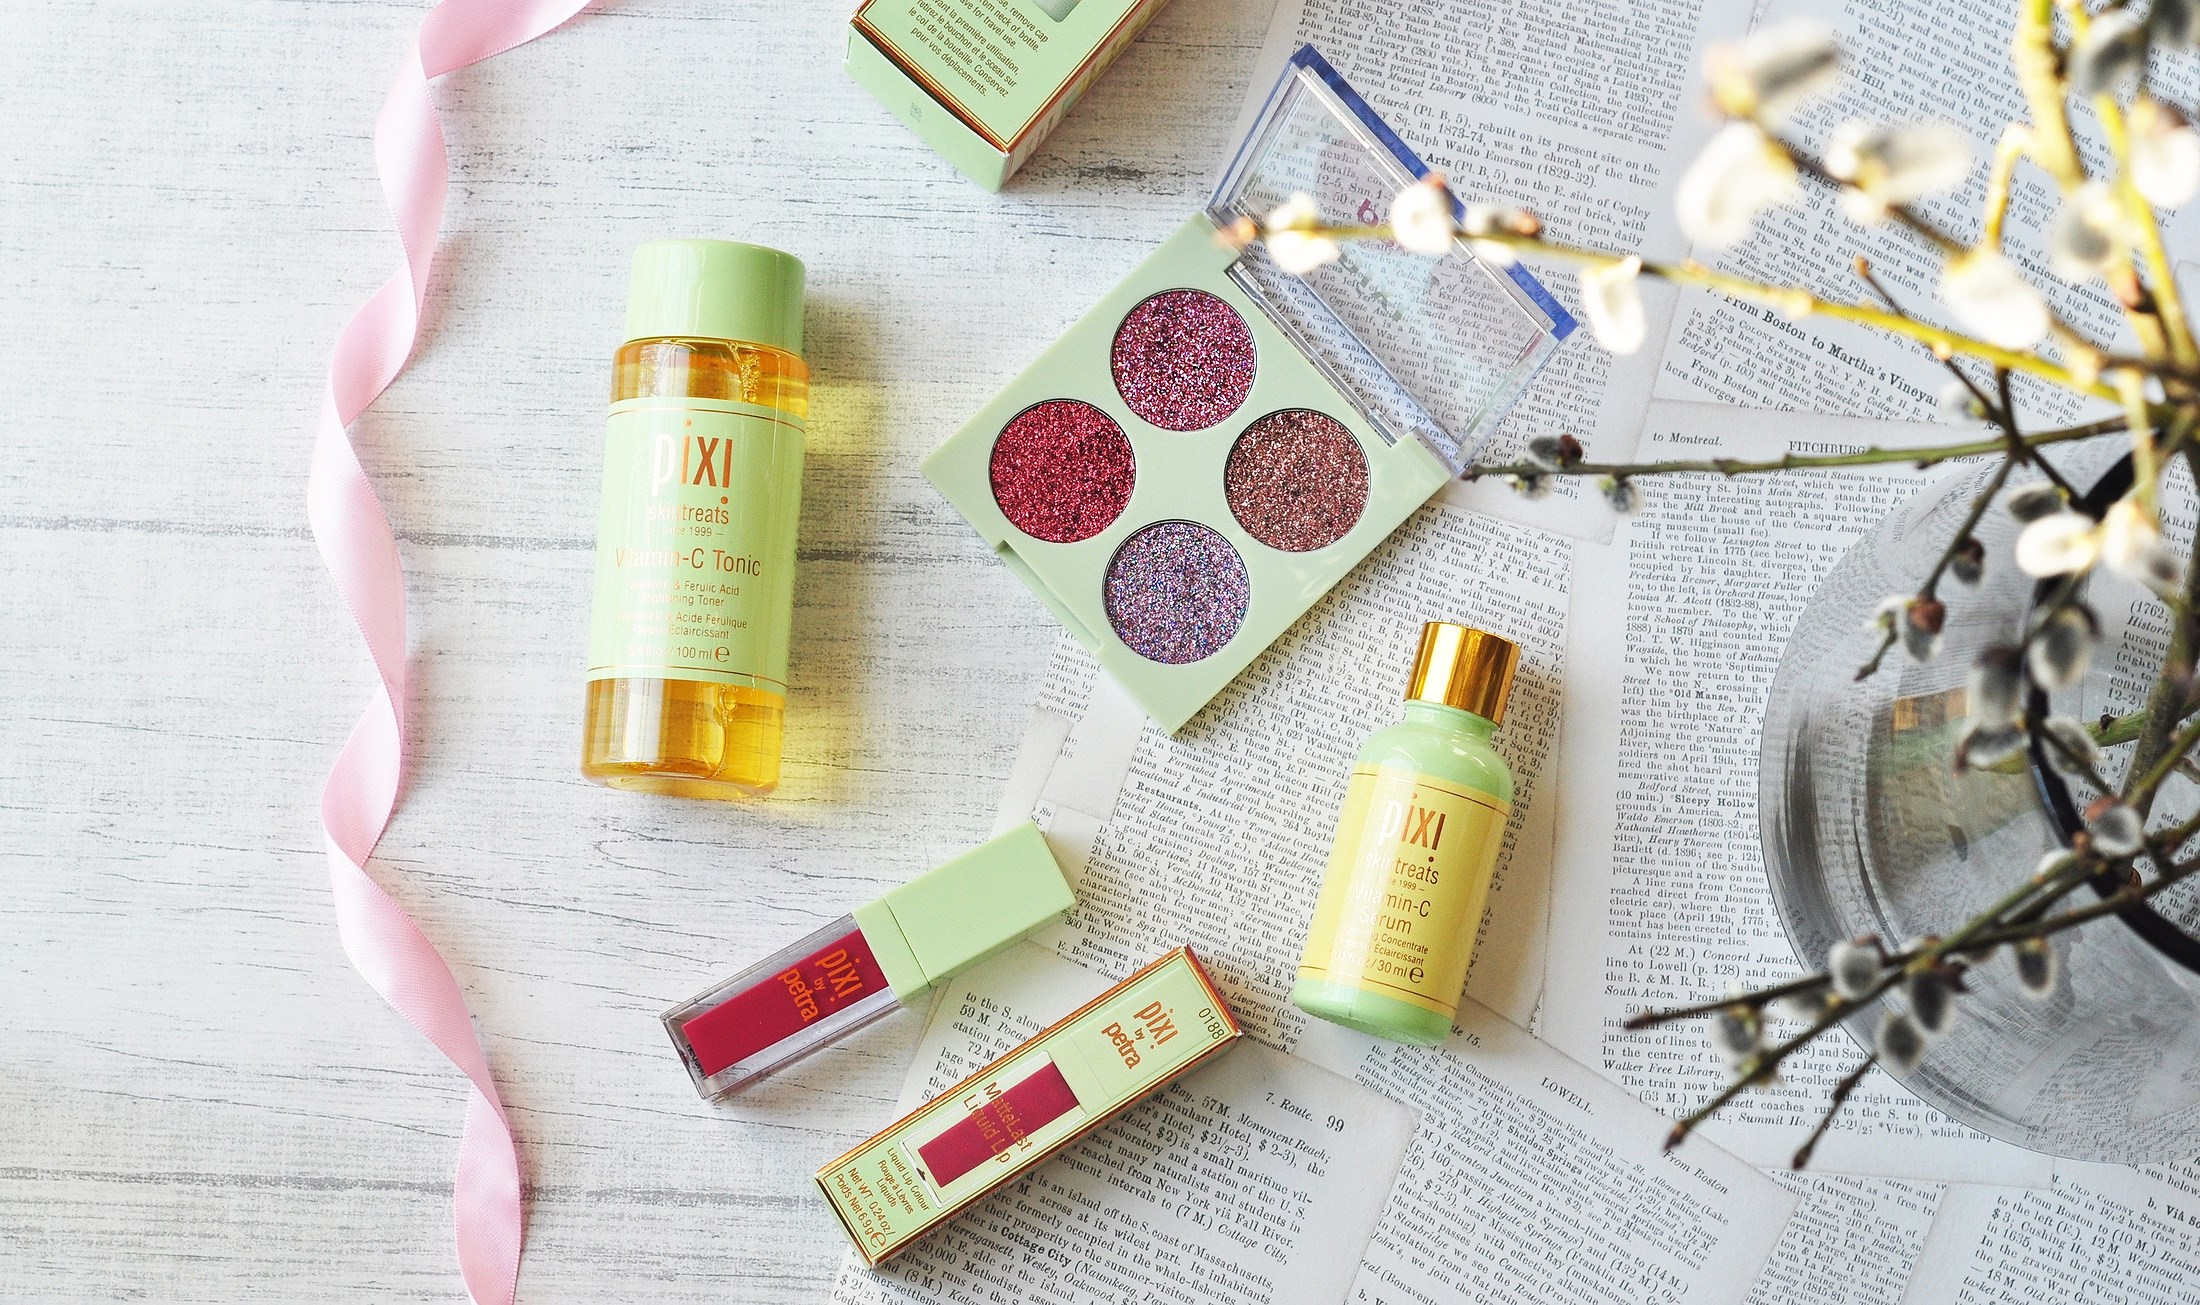 PIXI BEAUTY NEWS